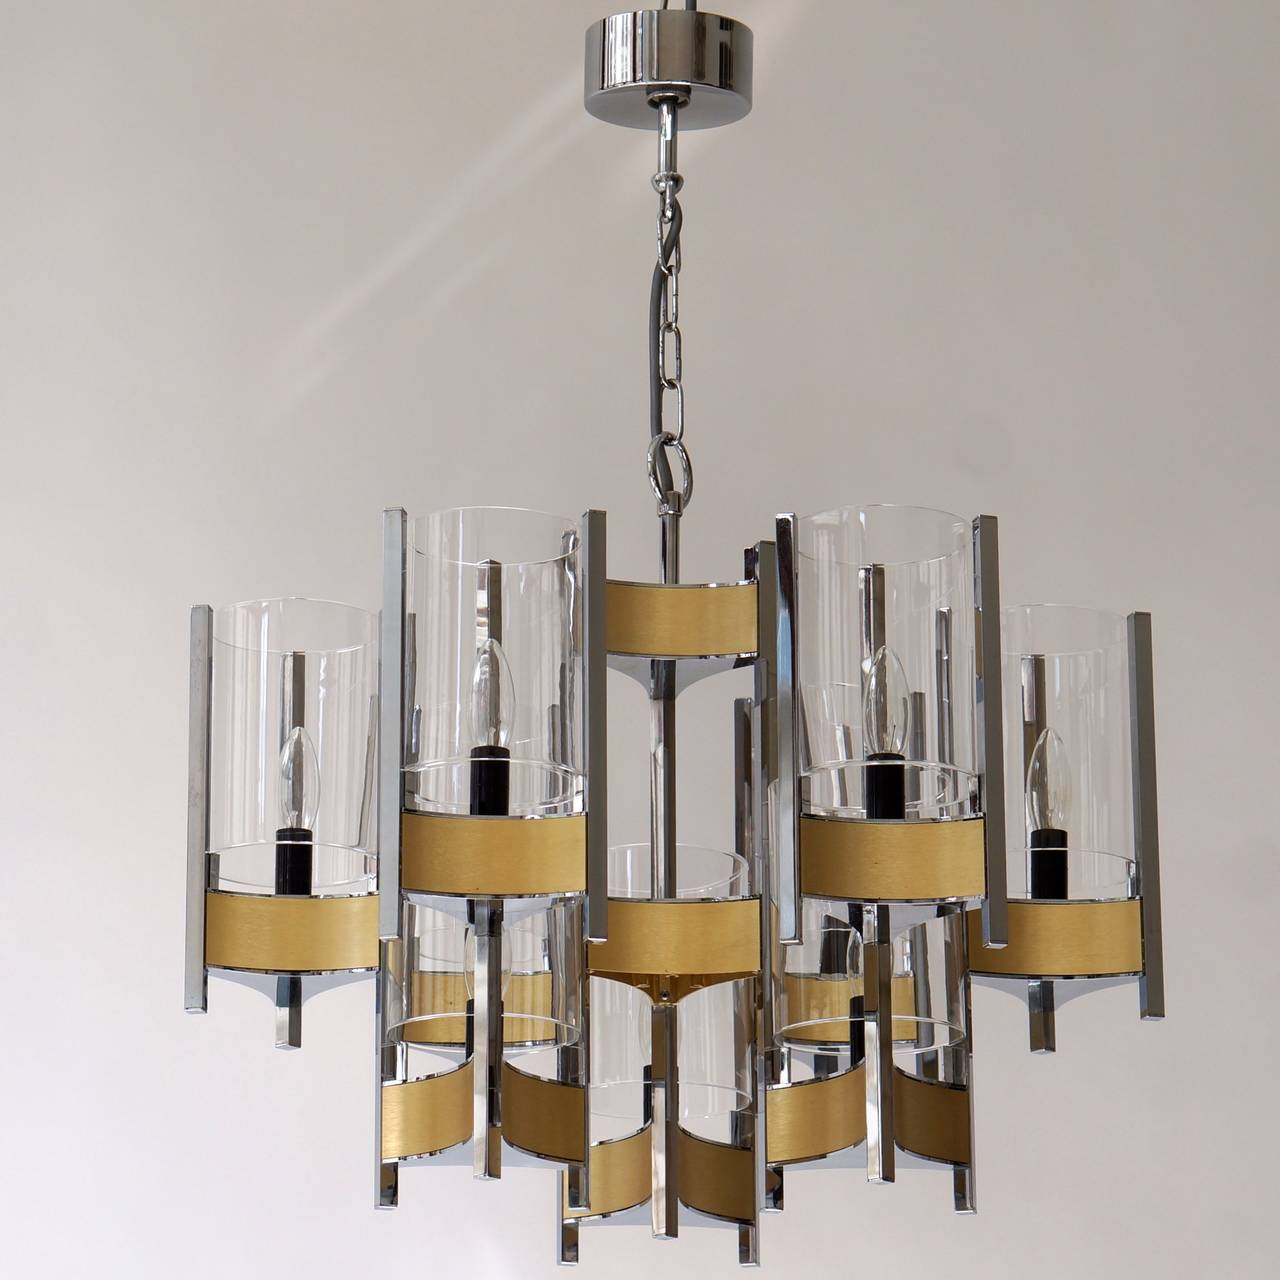 Set of Four Sculptural Sciolari Chandeliers In Good Condition For Sale In Antwerp, BE